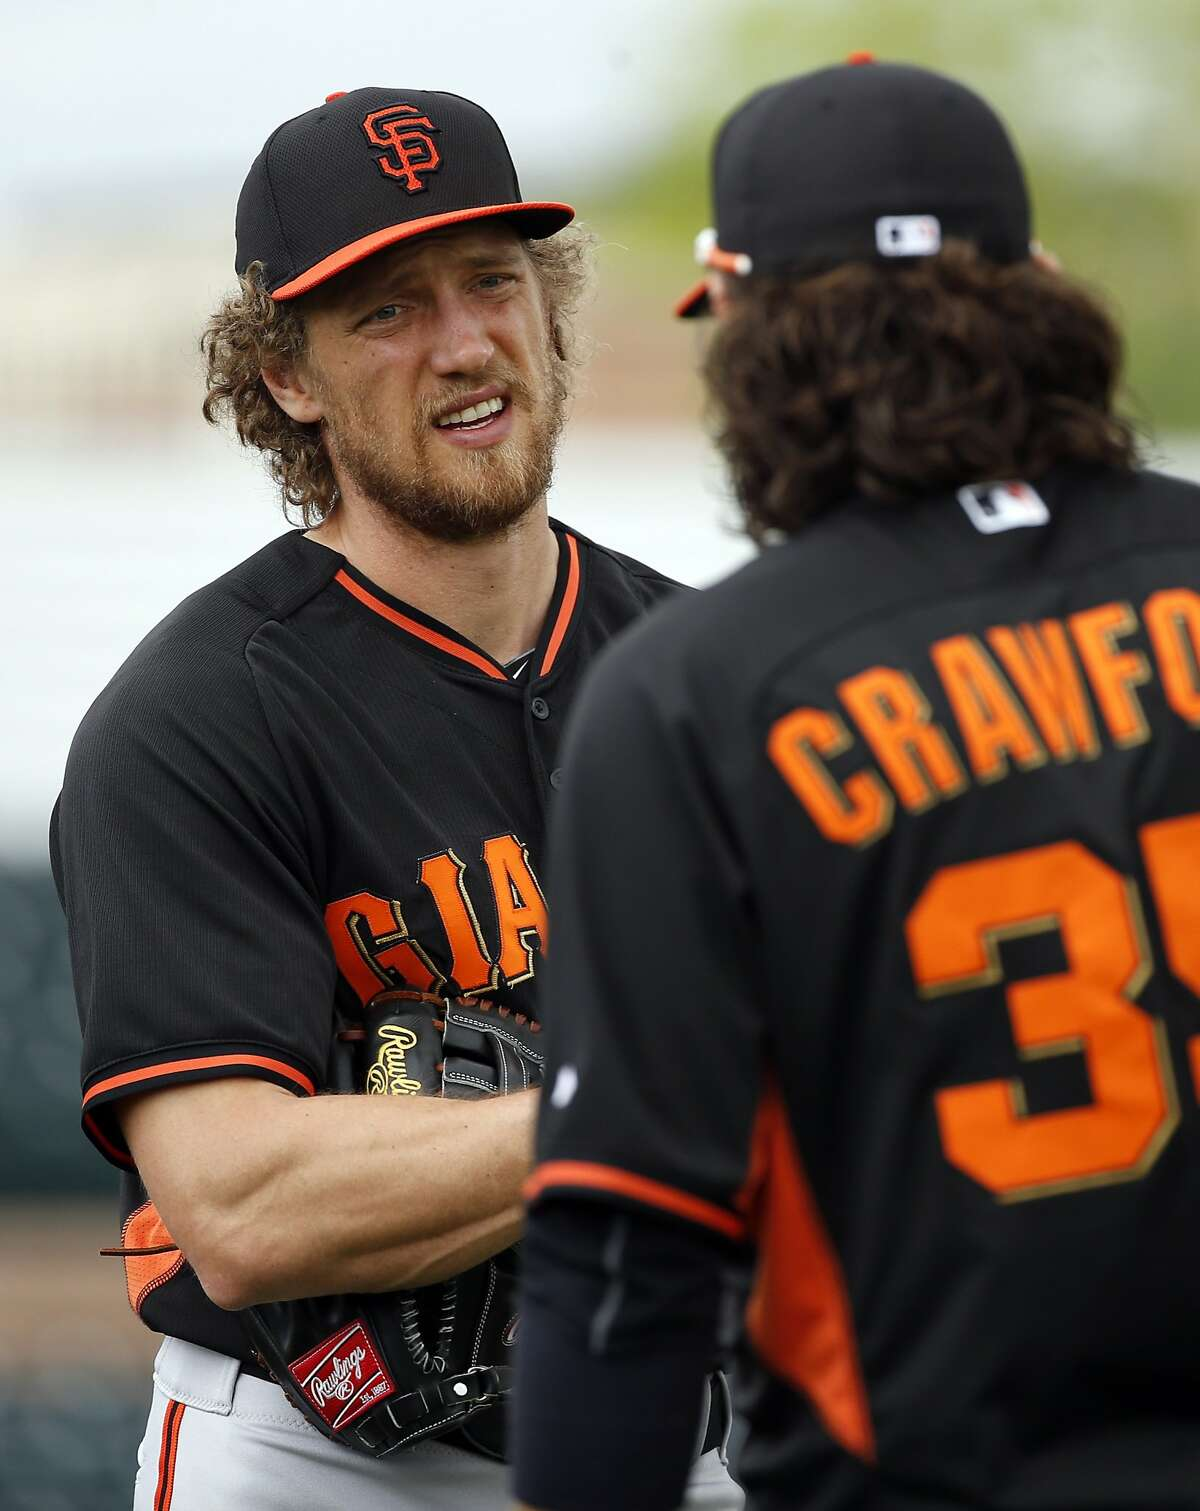 San Francisco Giants' Hunter Pence and Brandon Ceawford during Spring Training at Scottsdale Stadium in Scottsdale, Arizona, on Sunday, March 1, 2015.